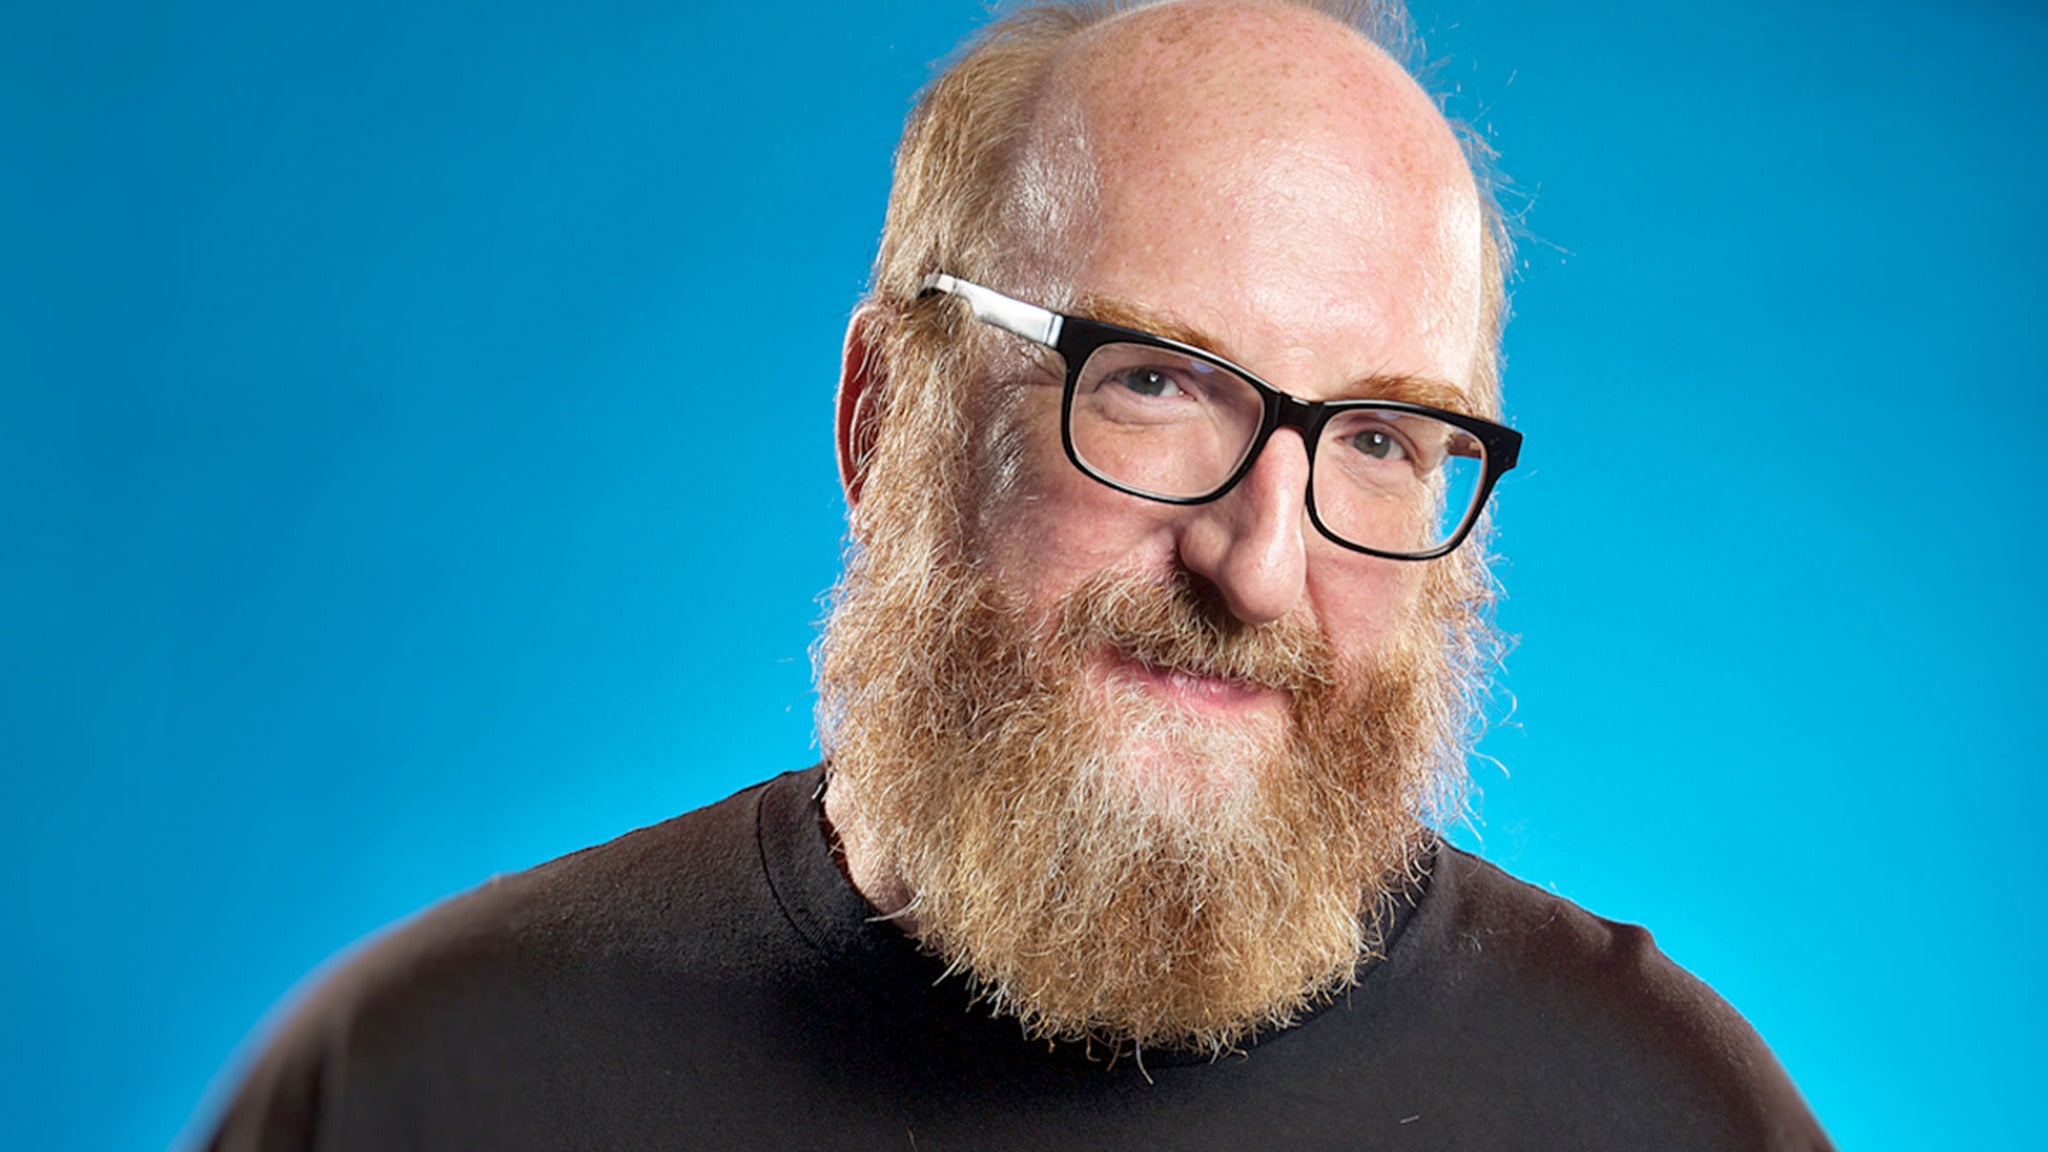 Brian Posehn at Punch Line Comedy Club - Sacramento